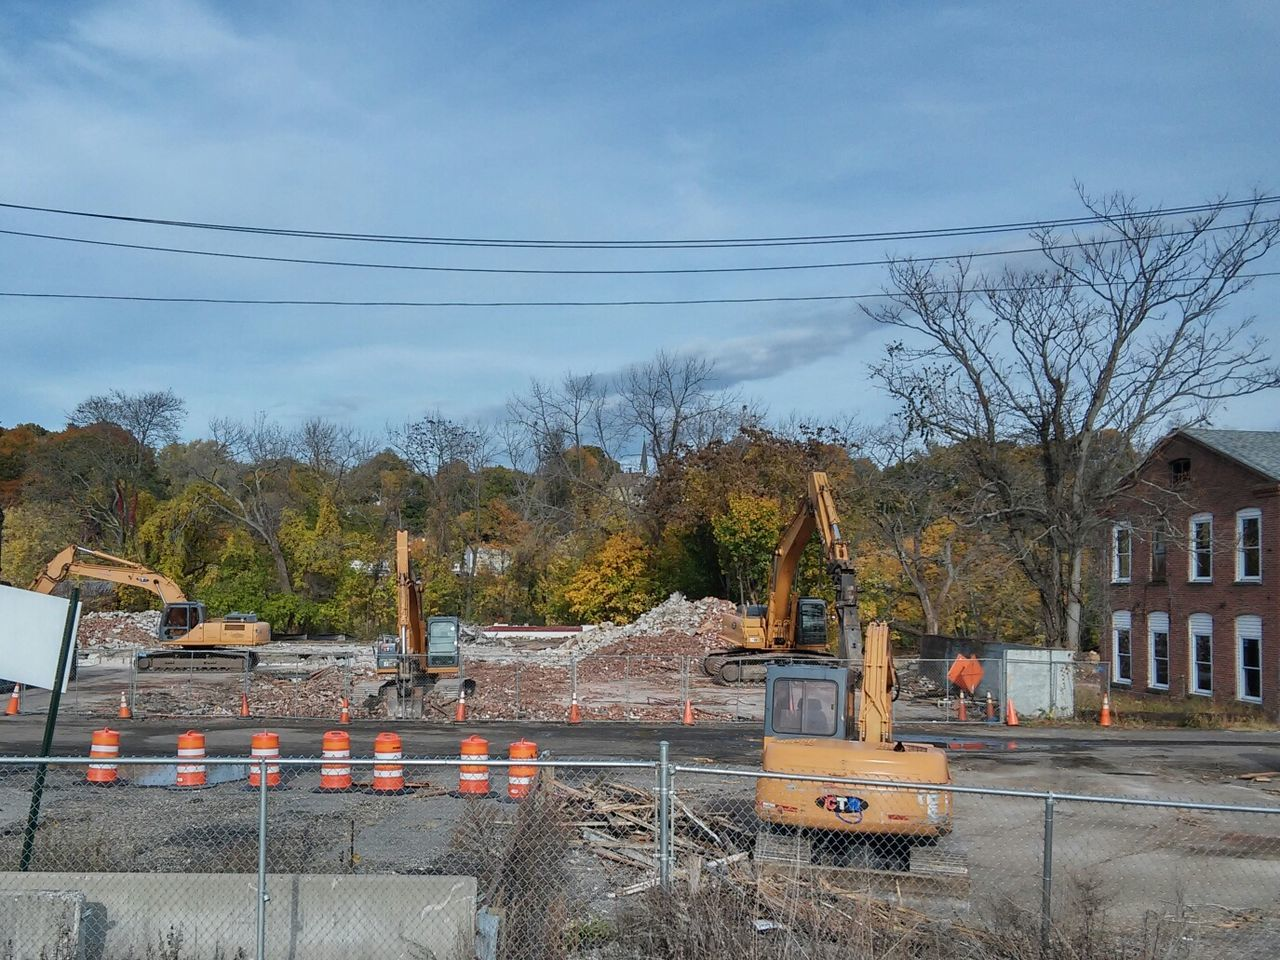 construction site, built structure, architecture, building exterior, tree, day, sky, no people, transportation, outdoors, cable